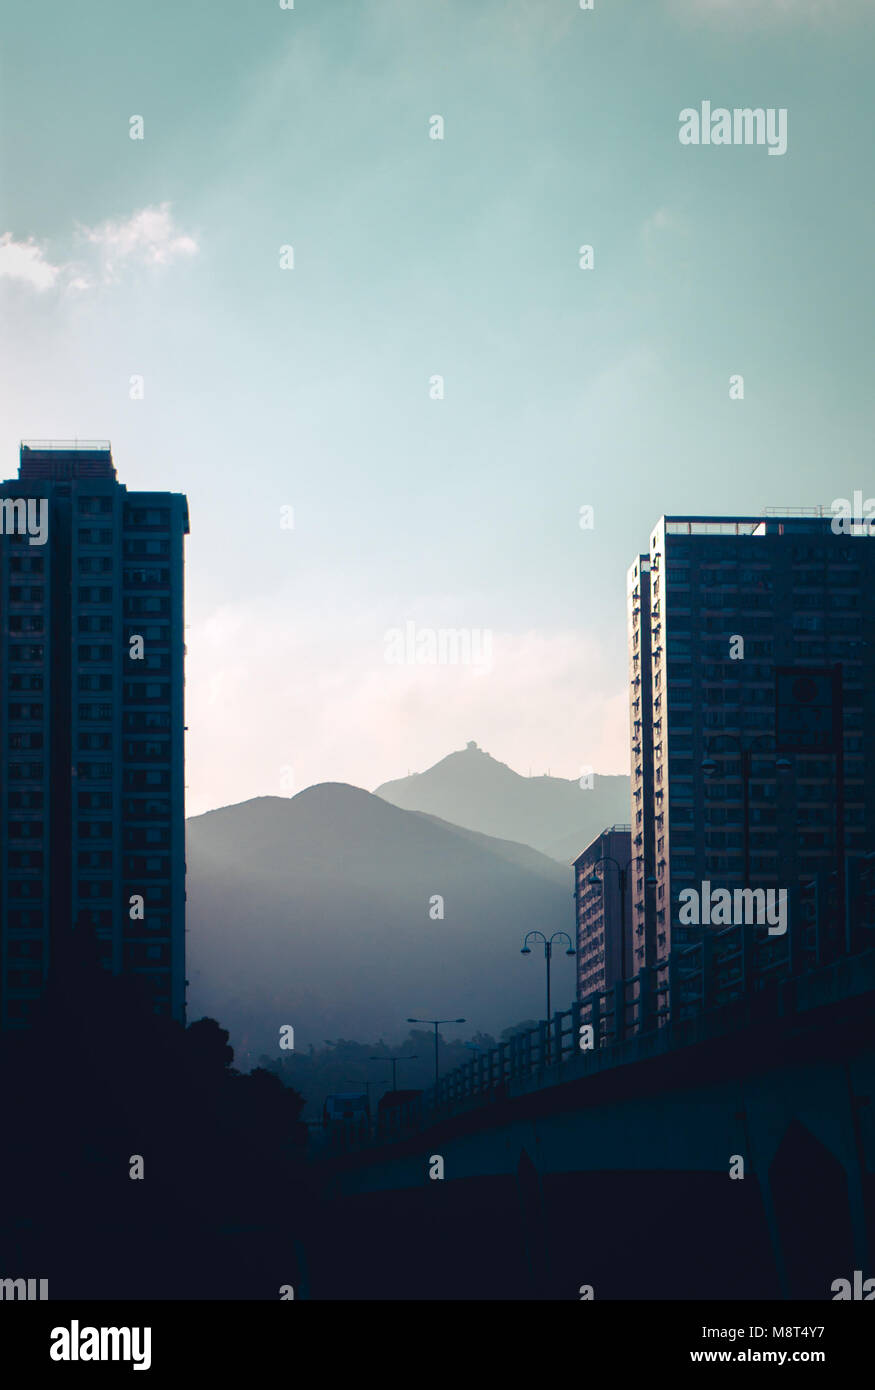 Buildings beside the Shing Mun River in the sunrise - Stock Image